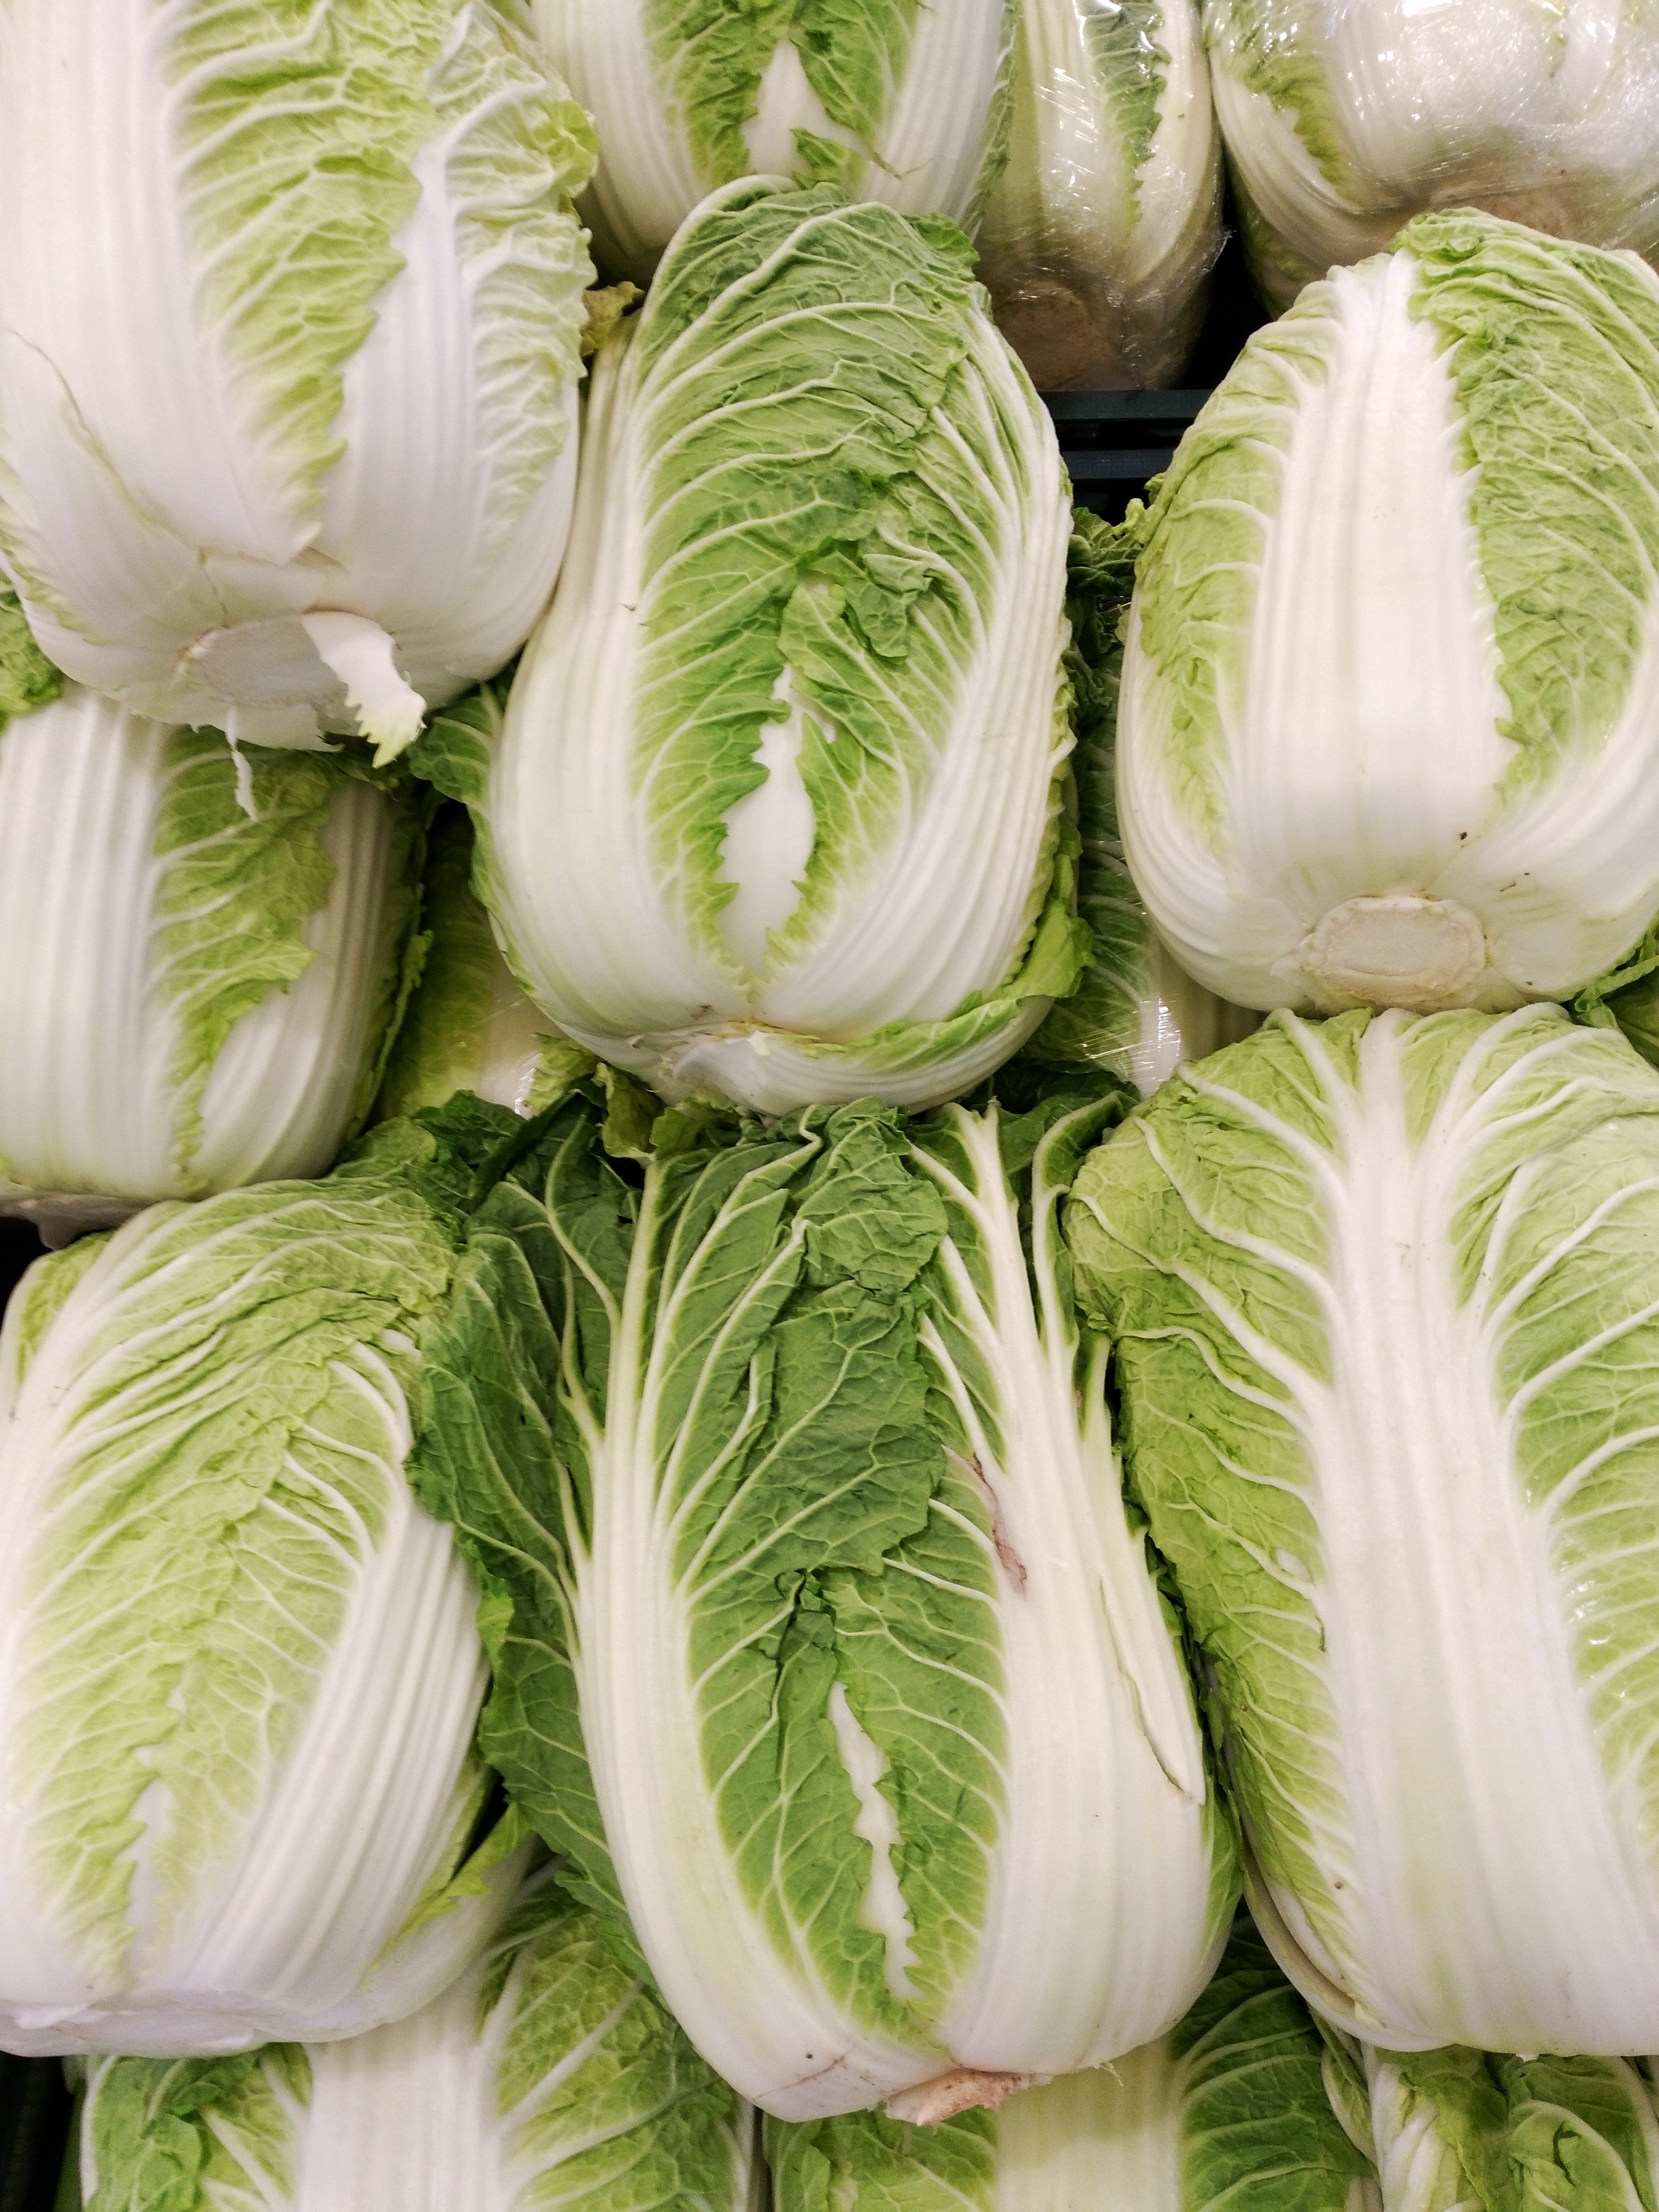 Napa Cabbage Wikipedia